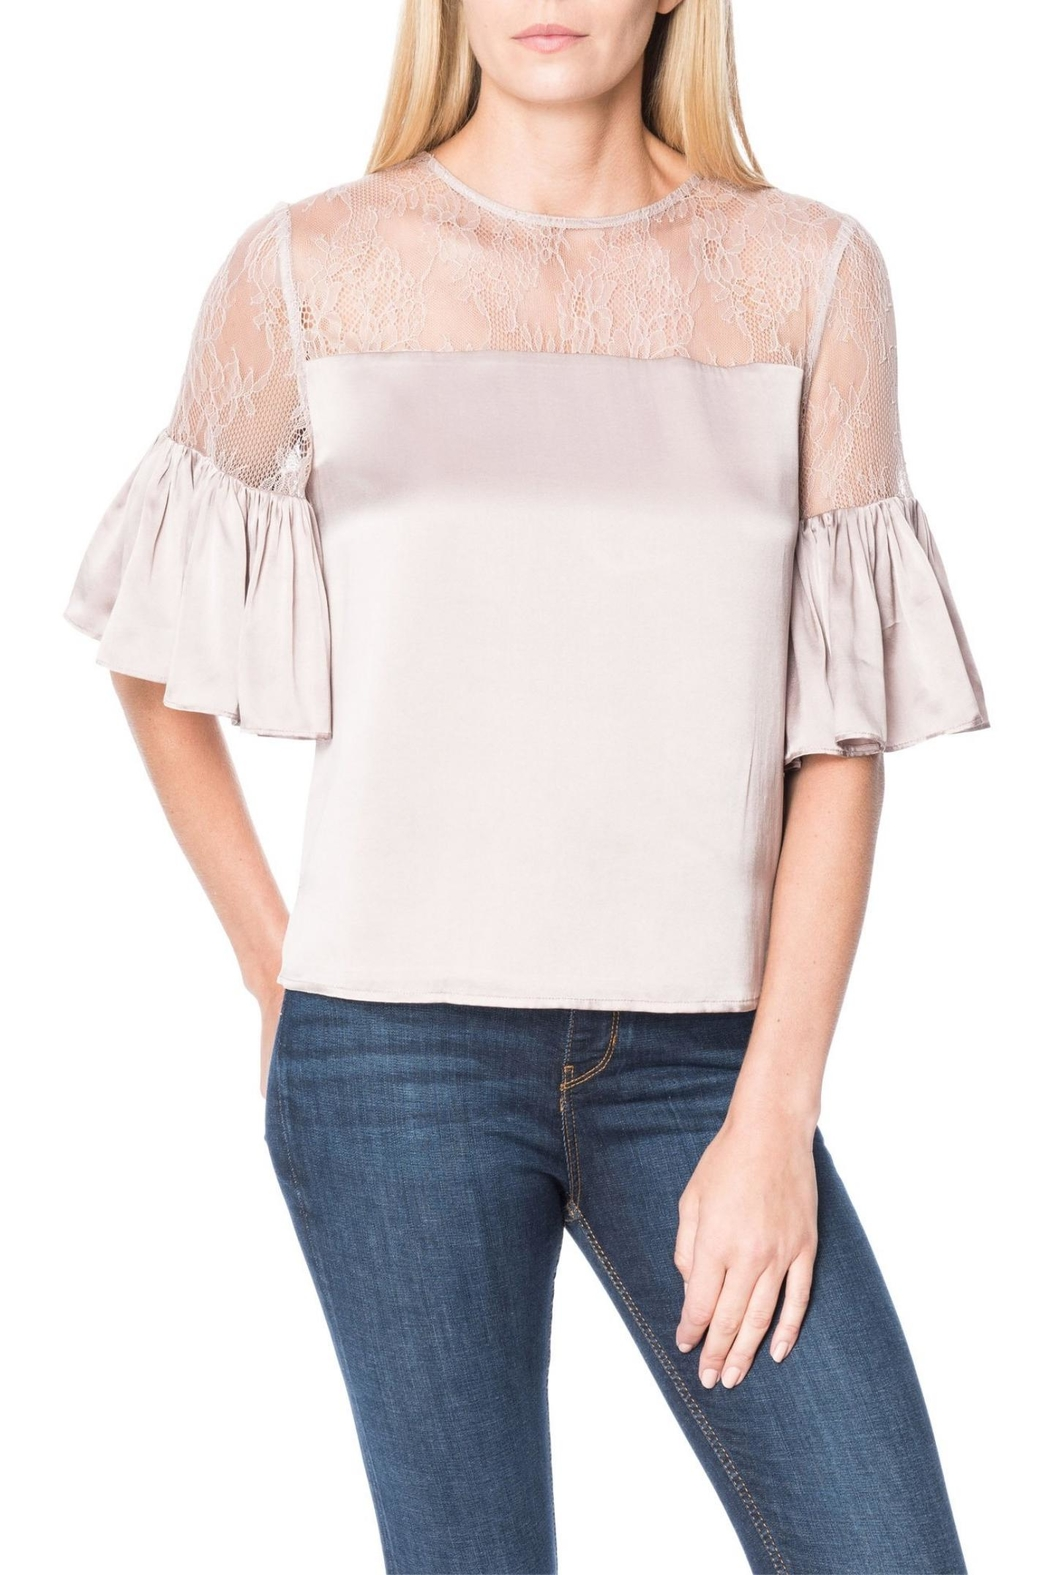 Cami NYC Shauna Top - Front Cropped Image